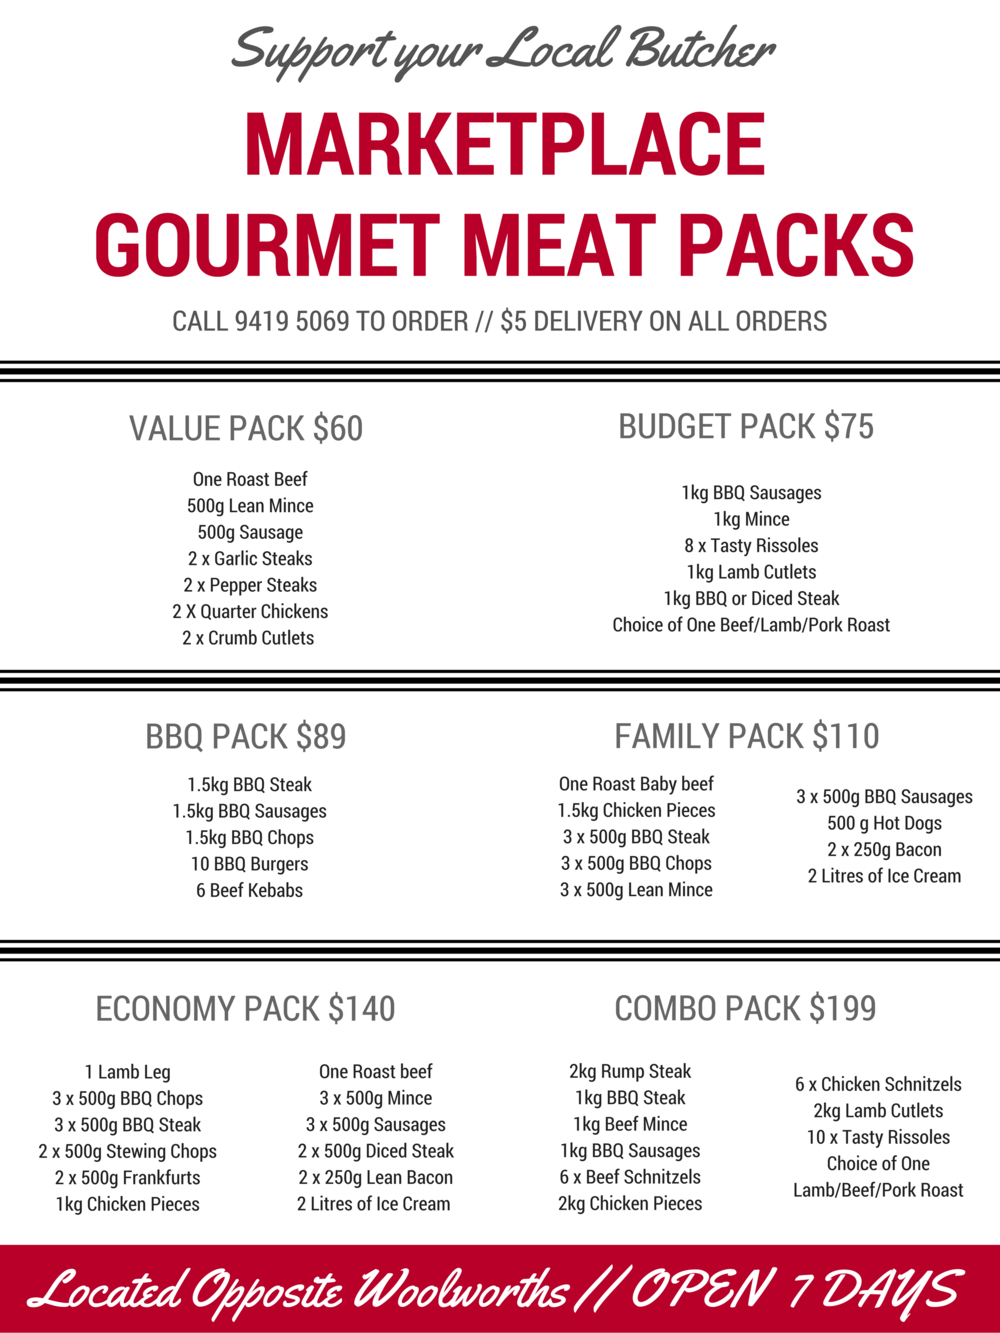 Marketplace Gourmet Meat Packs.png